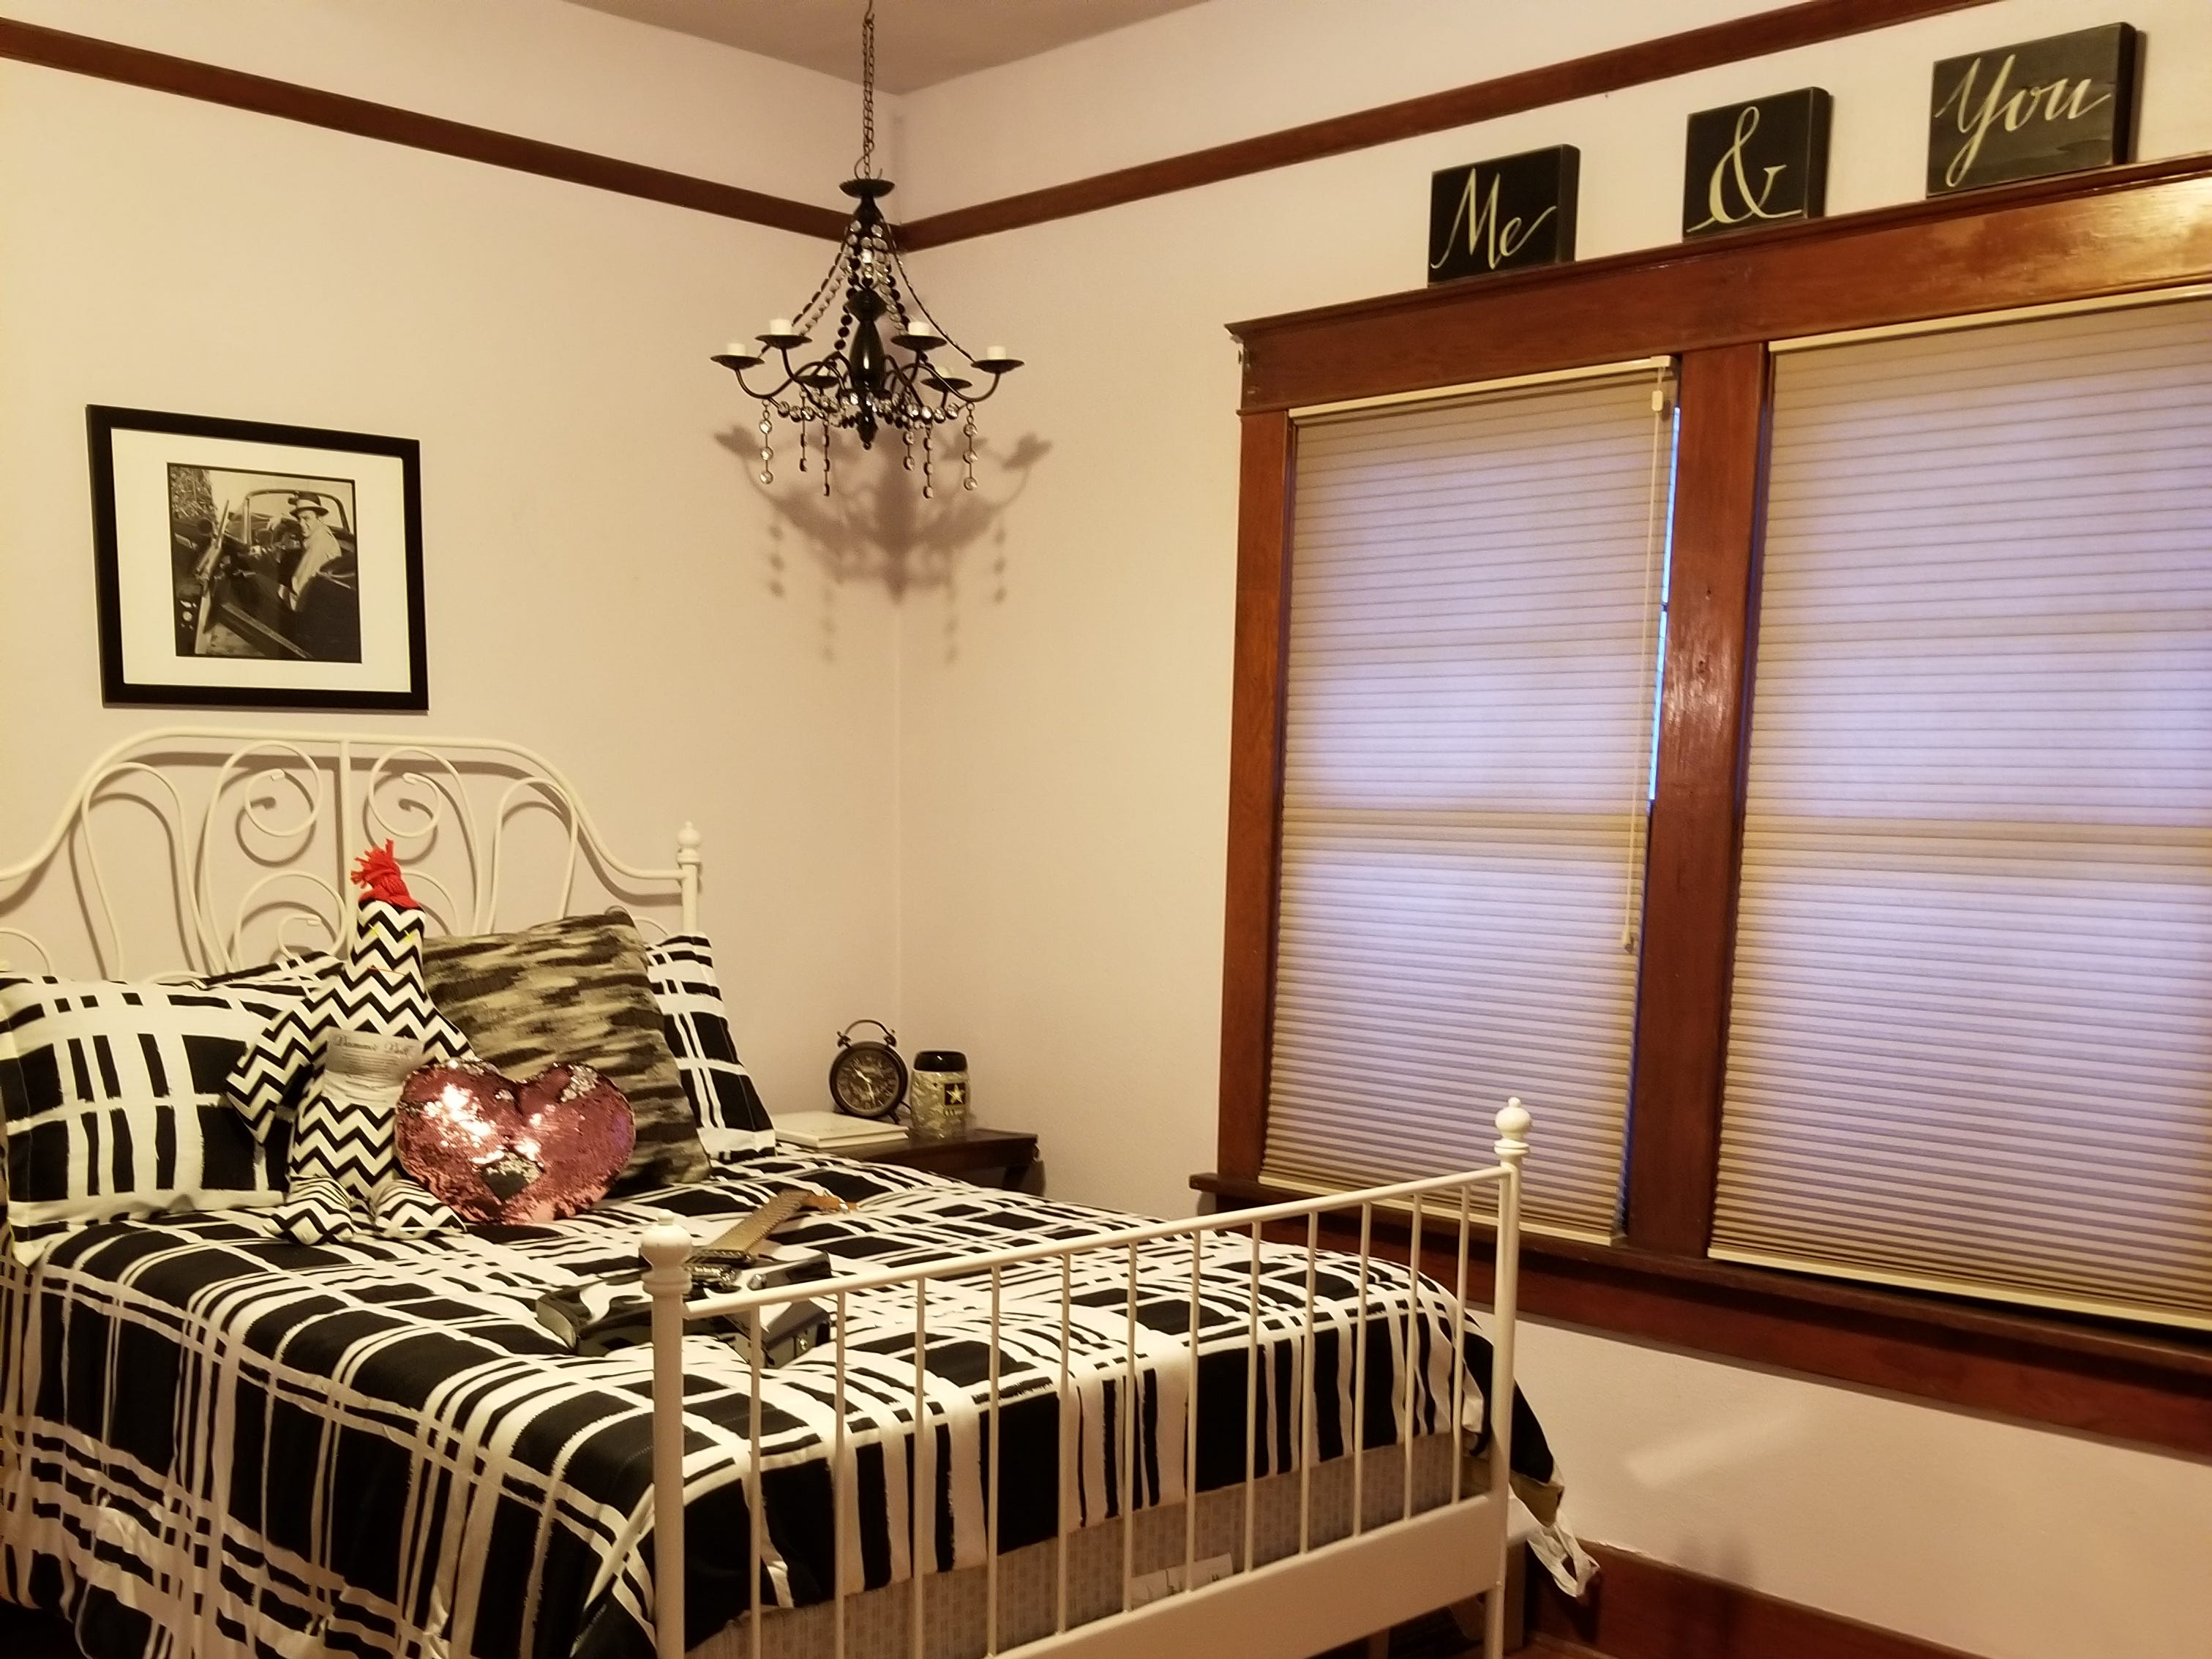 An antique iron bed sets the theme for this fun room design, featuring the original yet restored hardwoods, and movie-themed decorations.